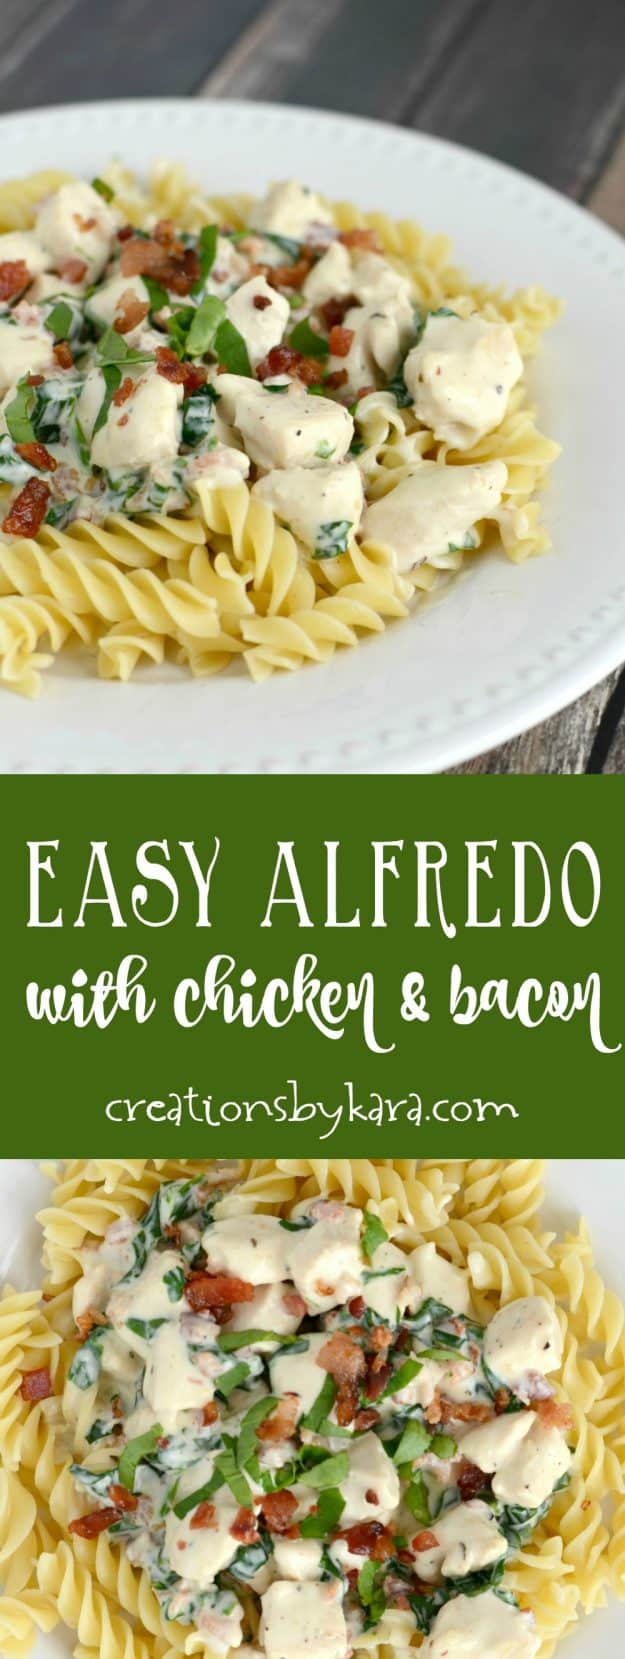 Easy Chicken Alfredo with Bacon and Spinach recipe collage